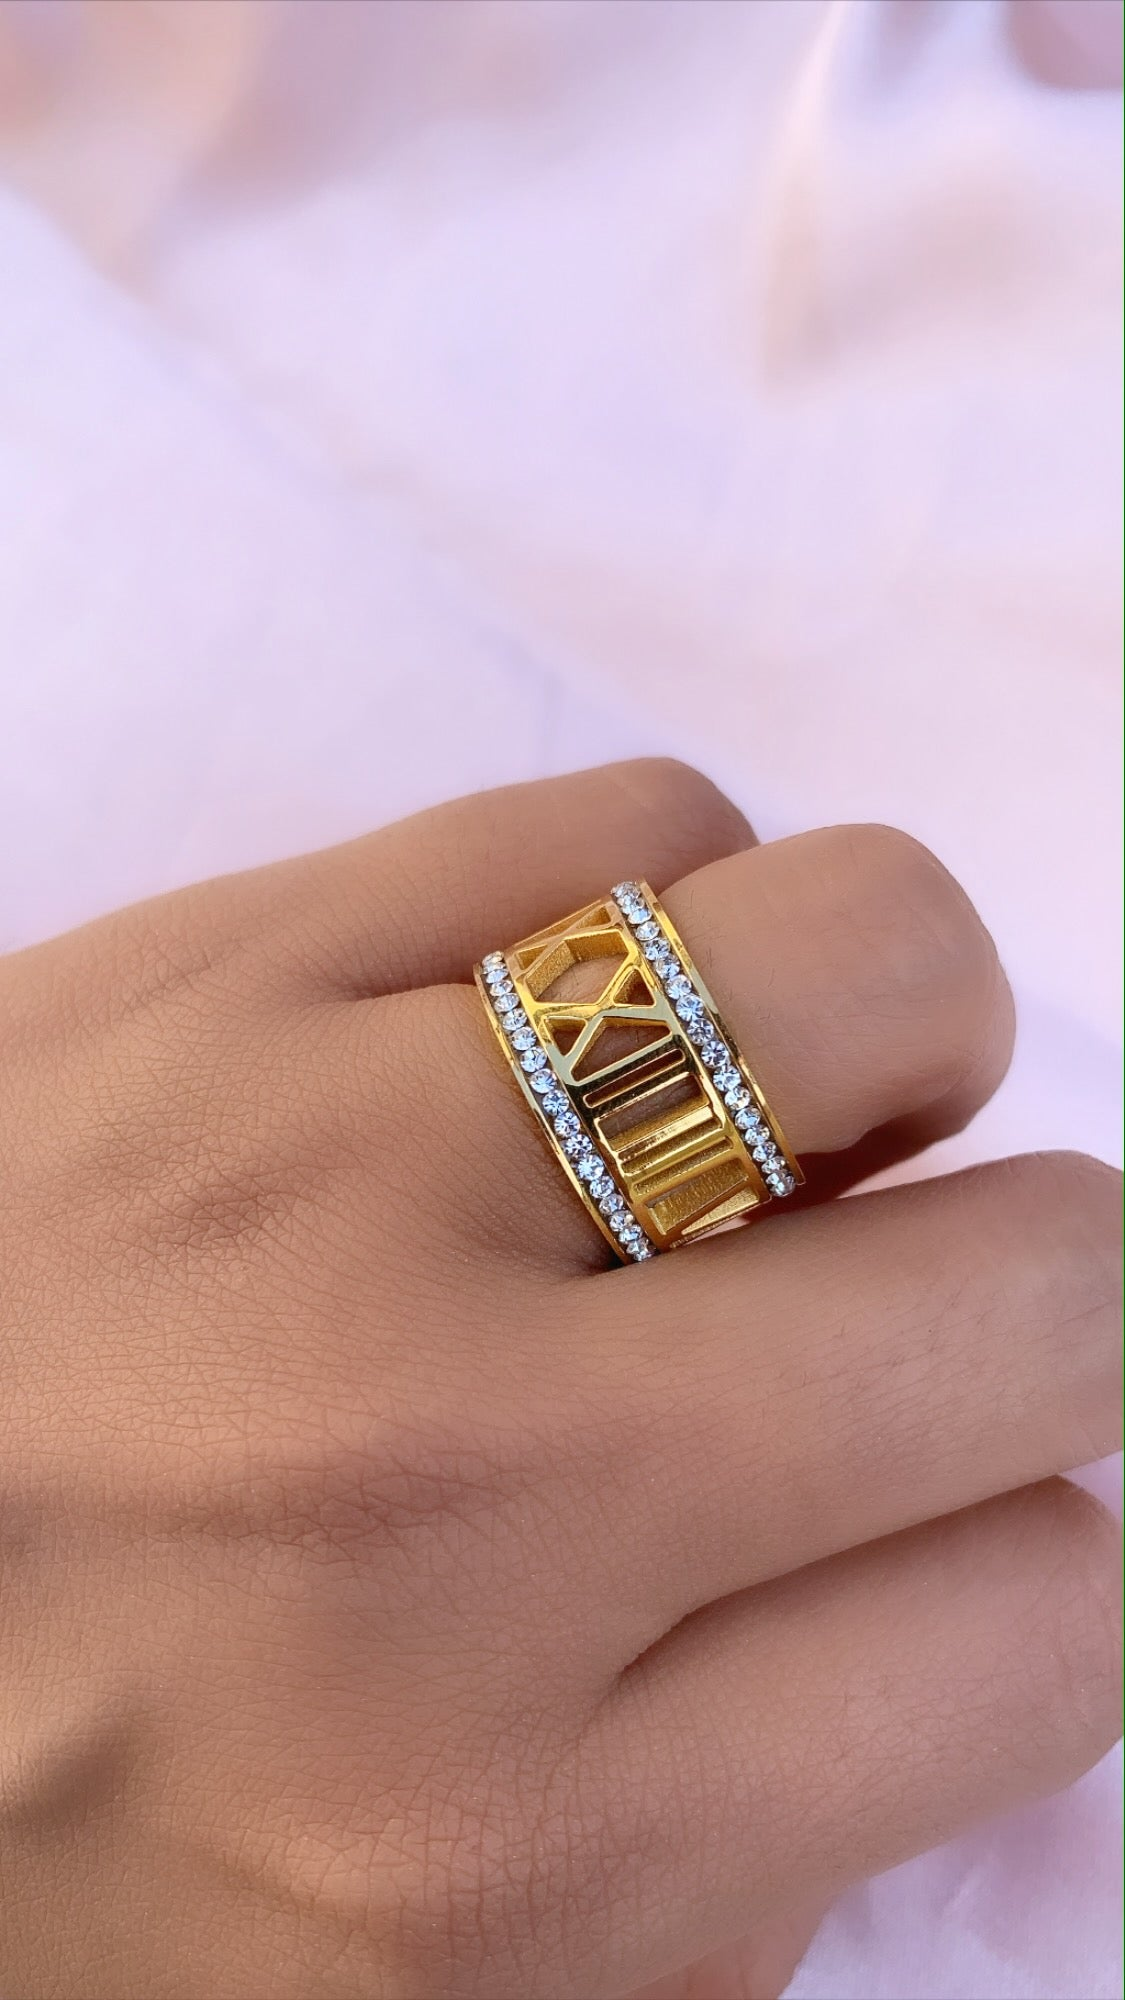 Numeral ring 4